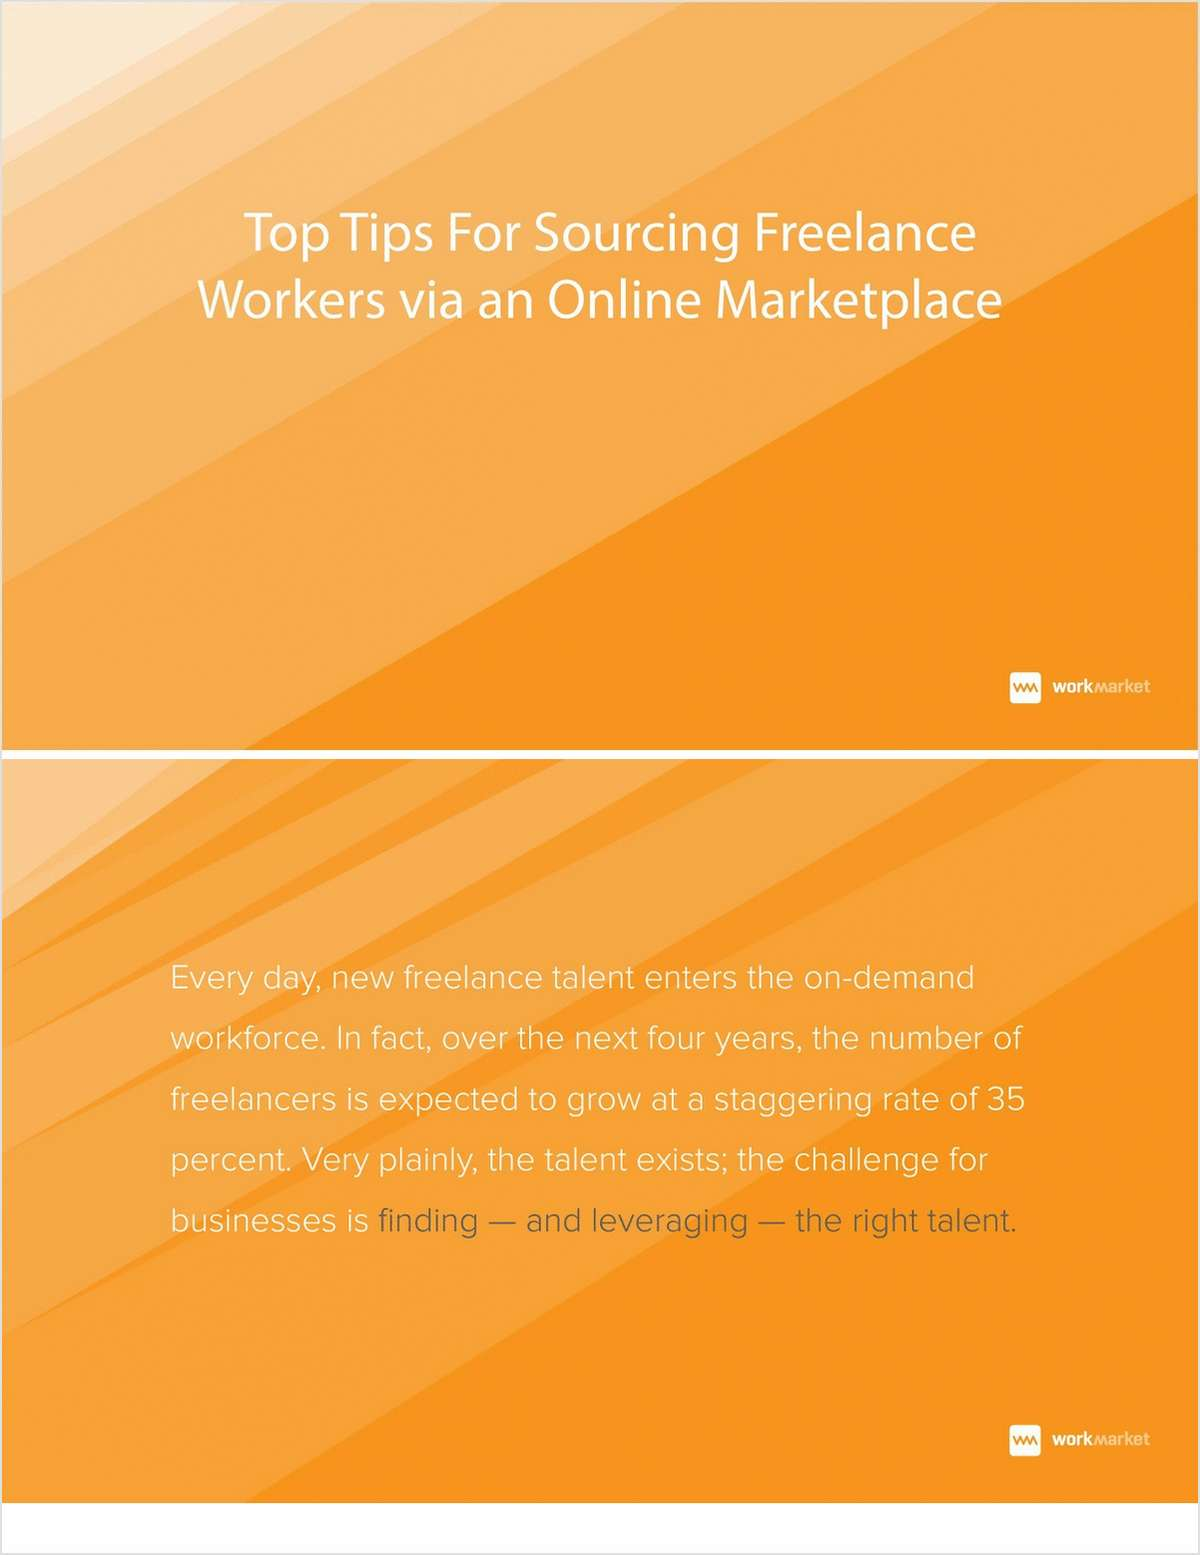 Top Tips for Sourcing Freelance Workers via an Online Marketplace